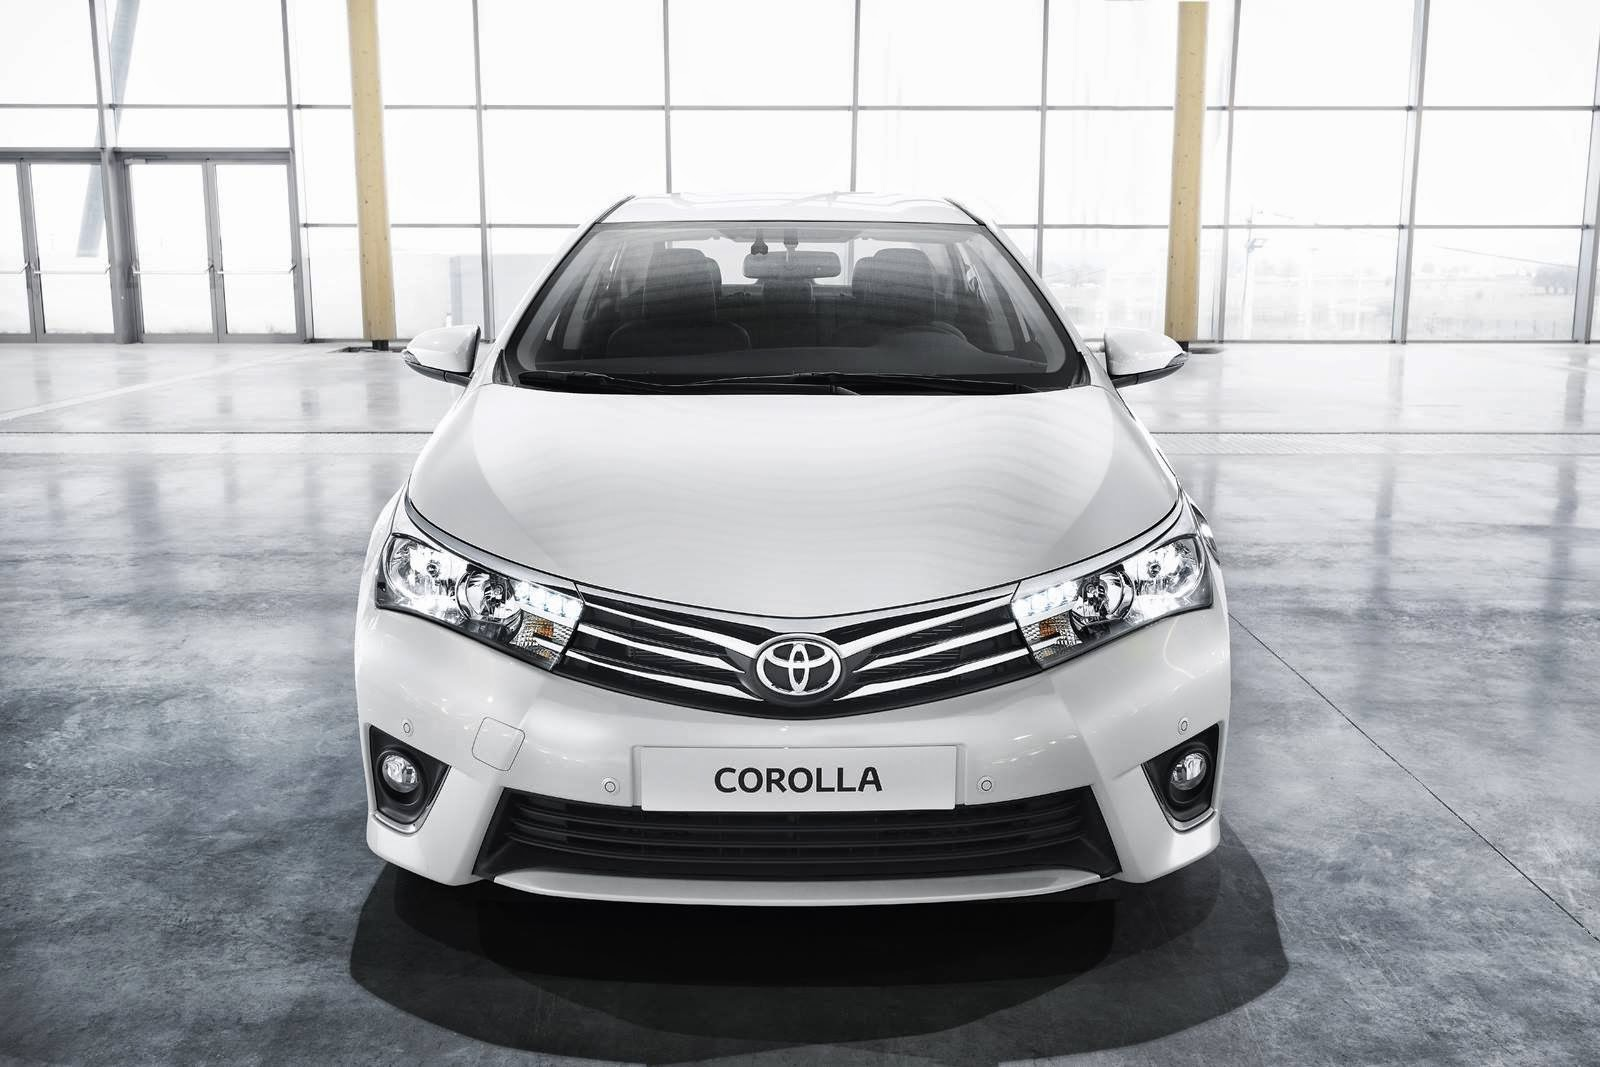 Toyota Corolla 2014 Front View